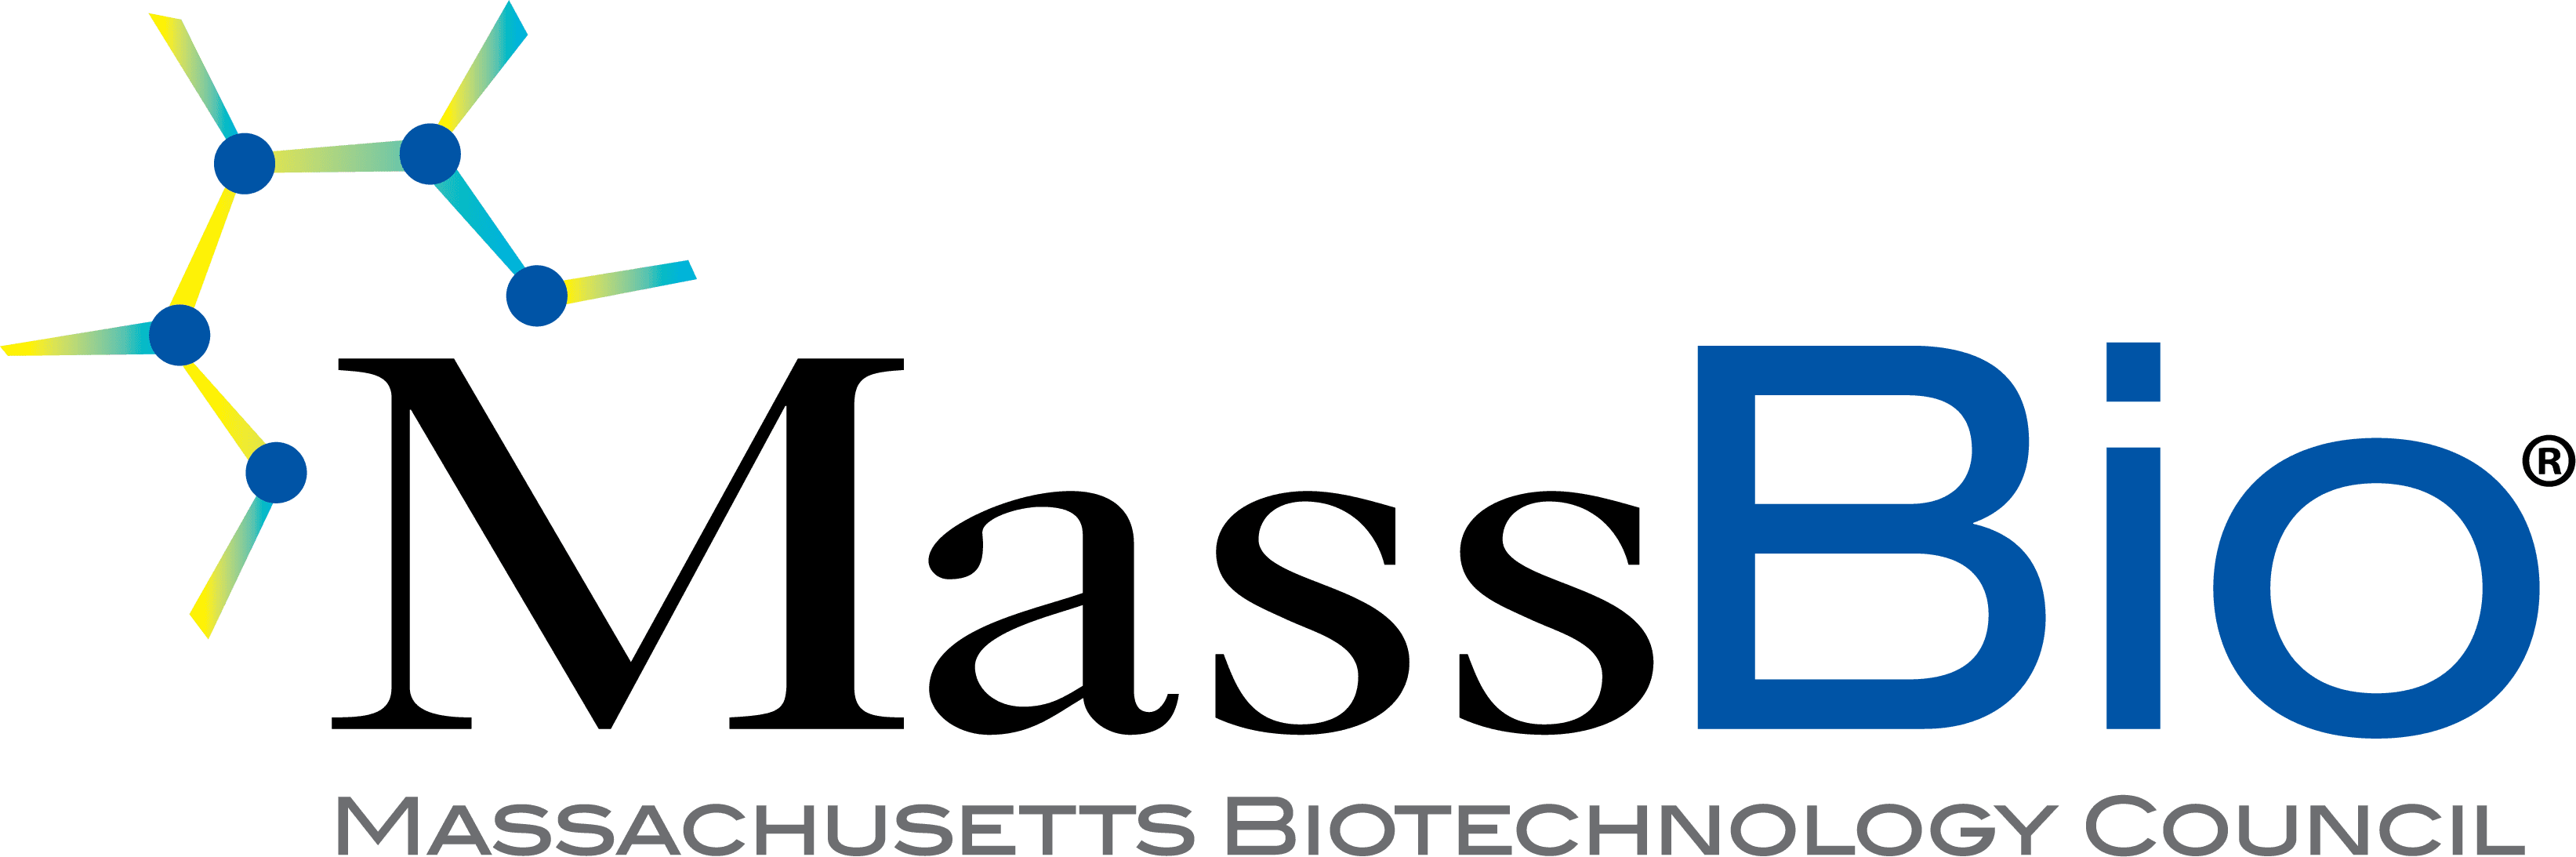 MASSBIO LOGO R MARK